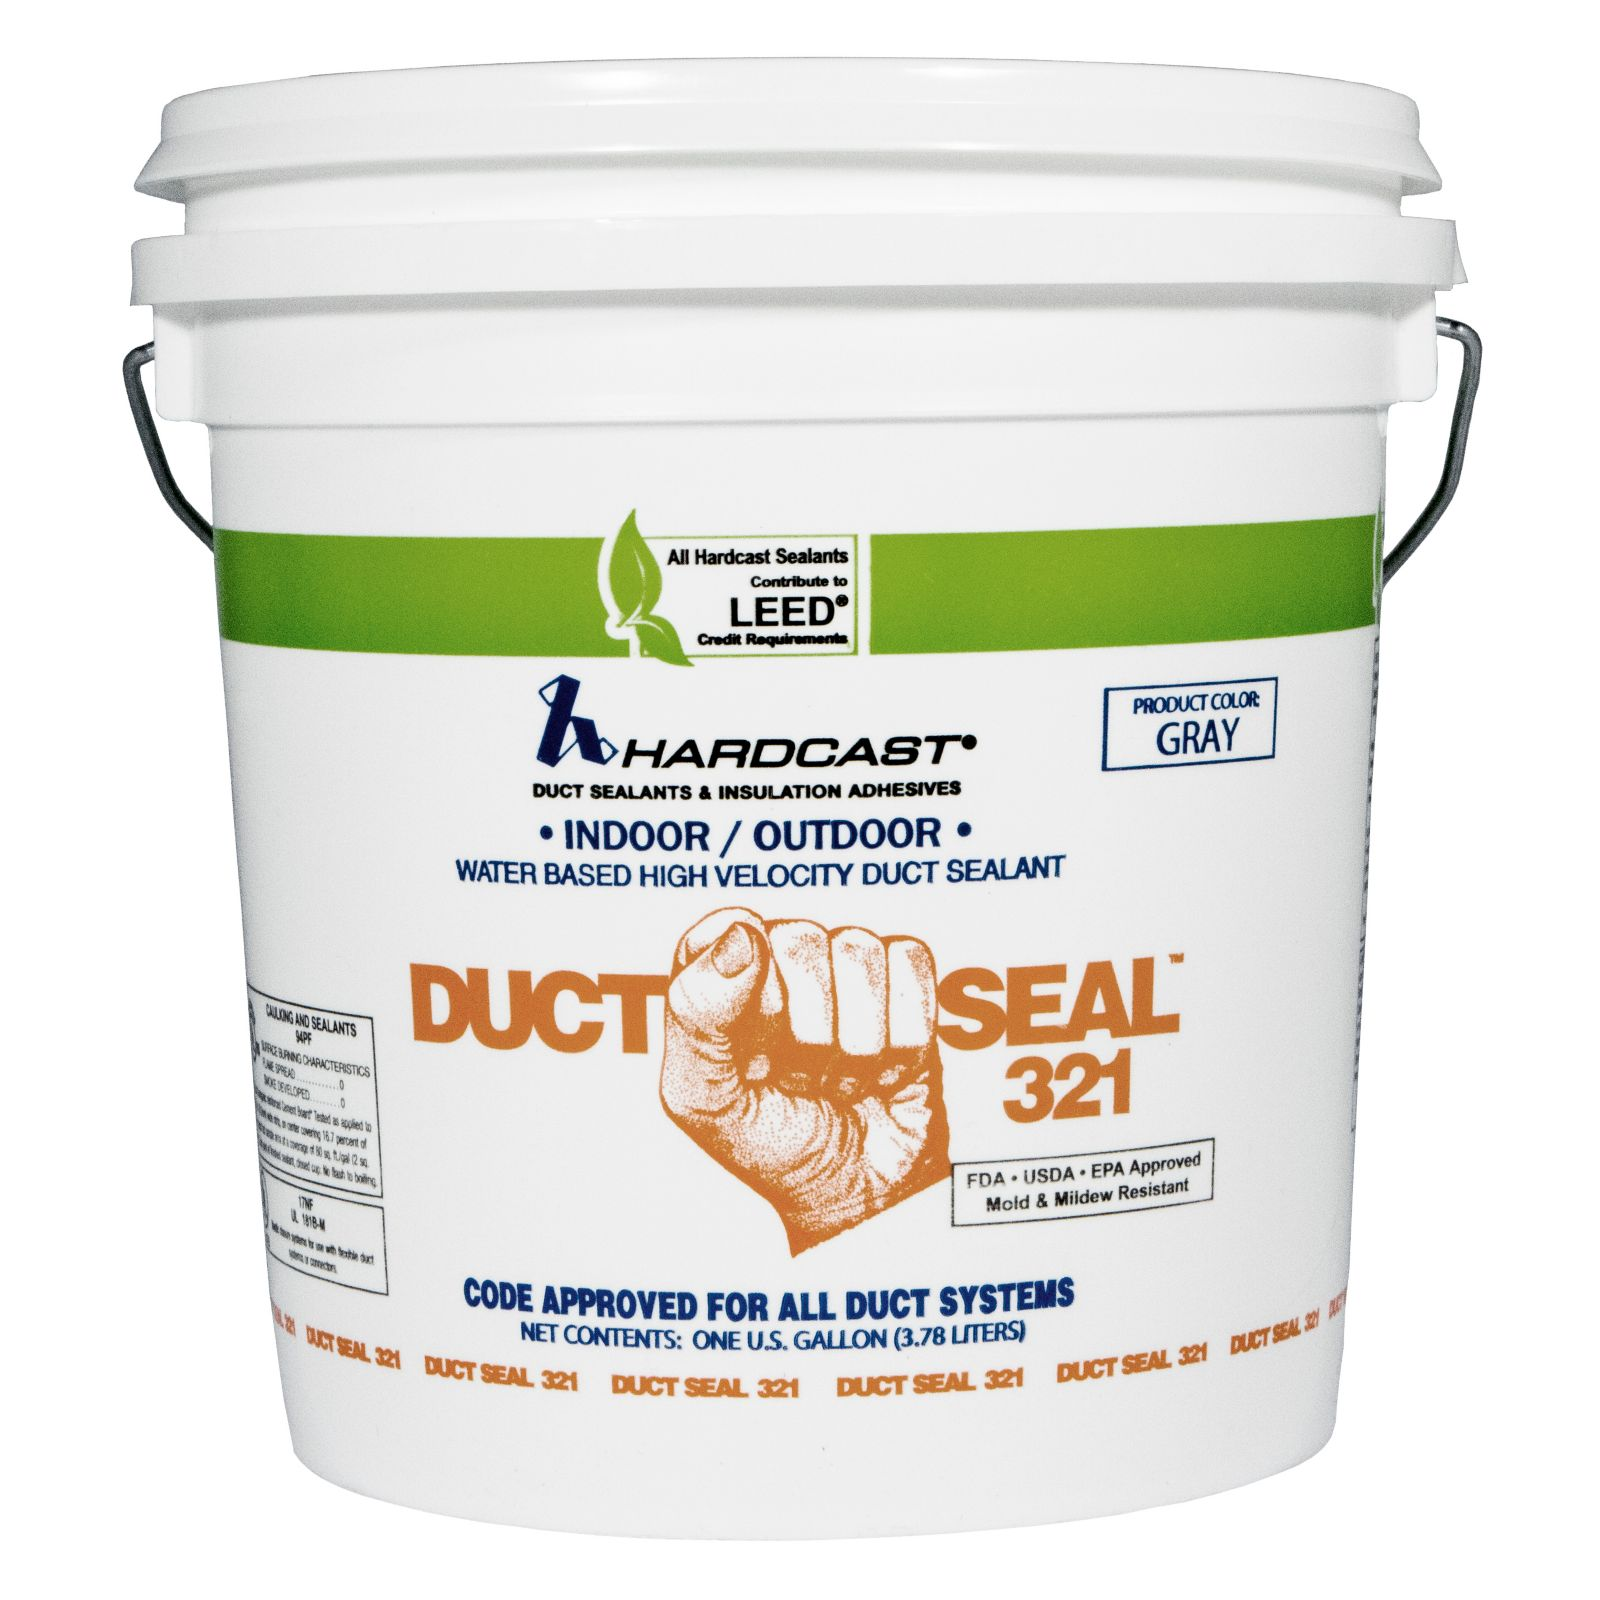 Hardcast/Carlisle 304156 - Duct-Seal 321 Water Based Duct Sealant, Grey, 1 Gallon